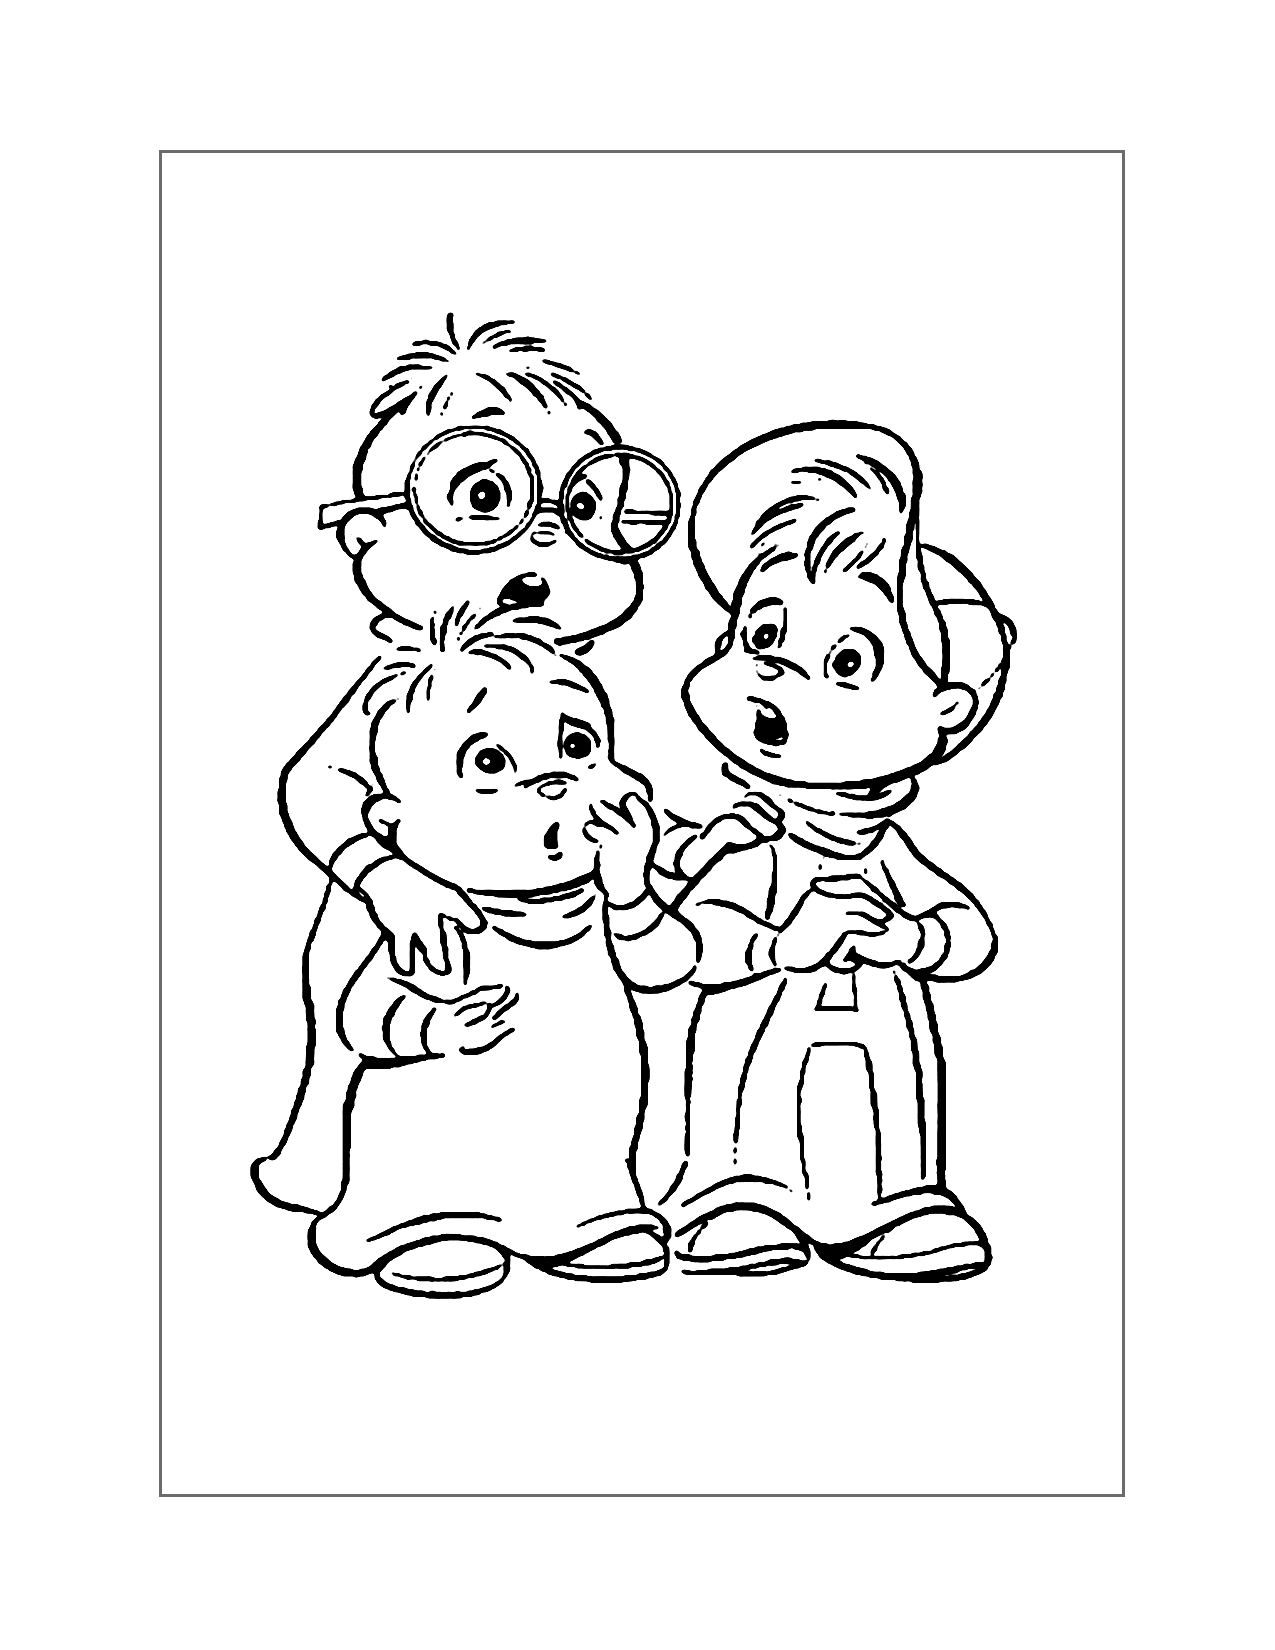 Cute Chipmunks Coloring Page